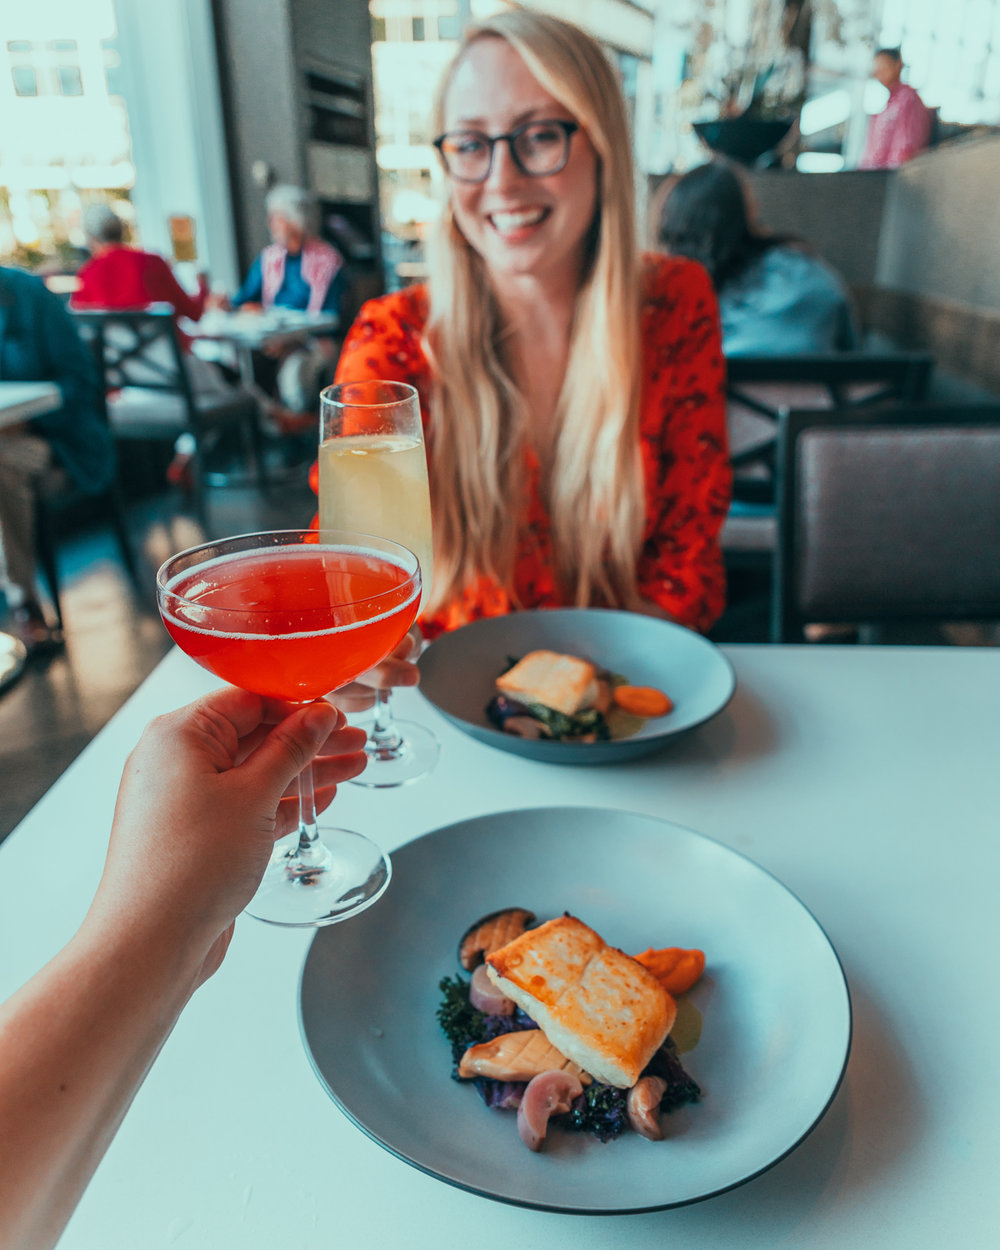 ARC Restaurant cocktails at the Fairmont Waterfront // The Quick Guide to Visiting Vancouver, BC #readysetjetset